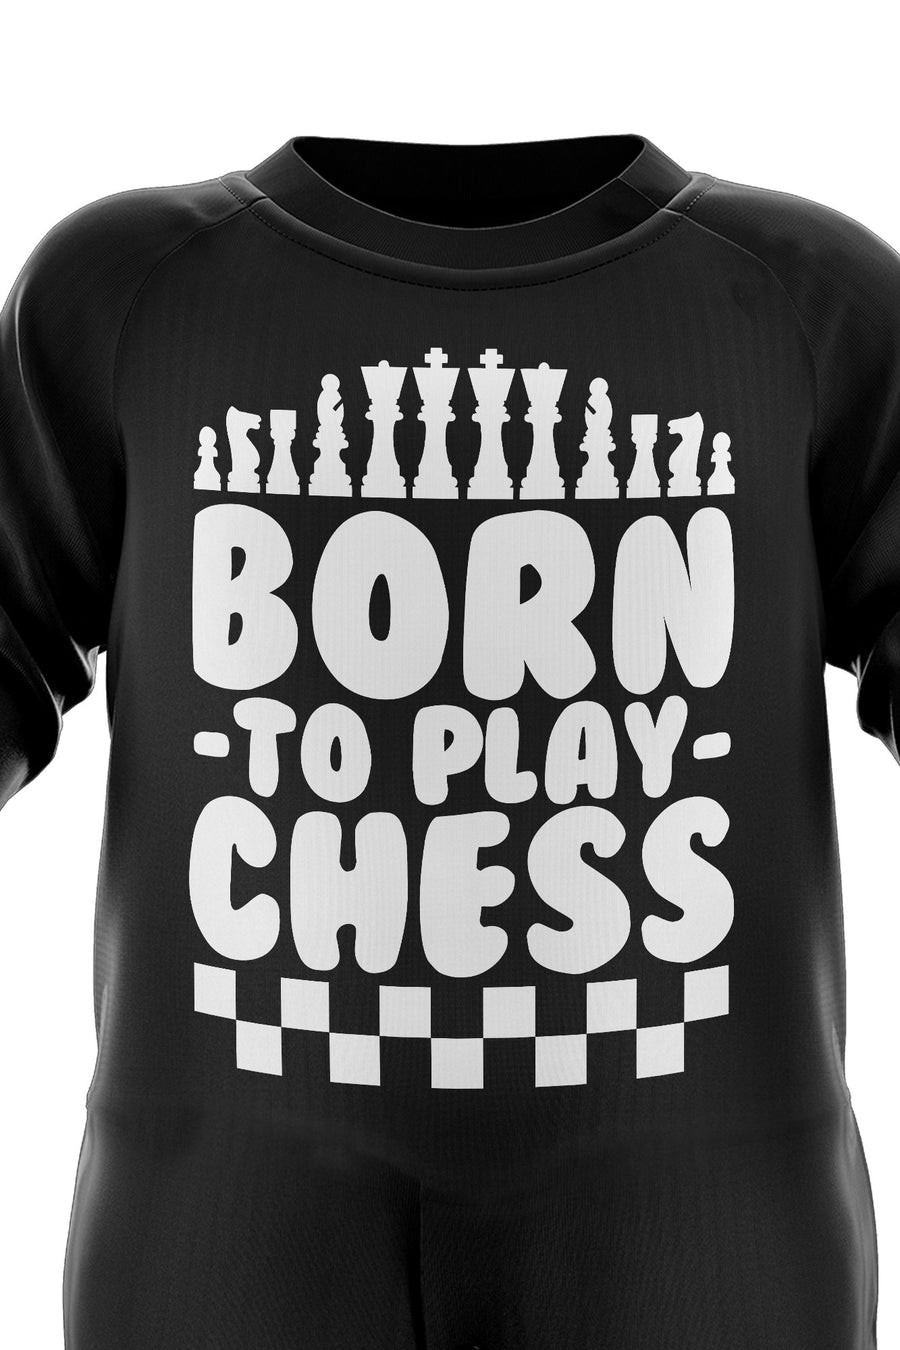 Born To Play Chess Babygrow - Board Games Baby Romper Suit - Babies Chess Christmas Gift - Birthday Present - Newborn Romper